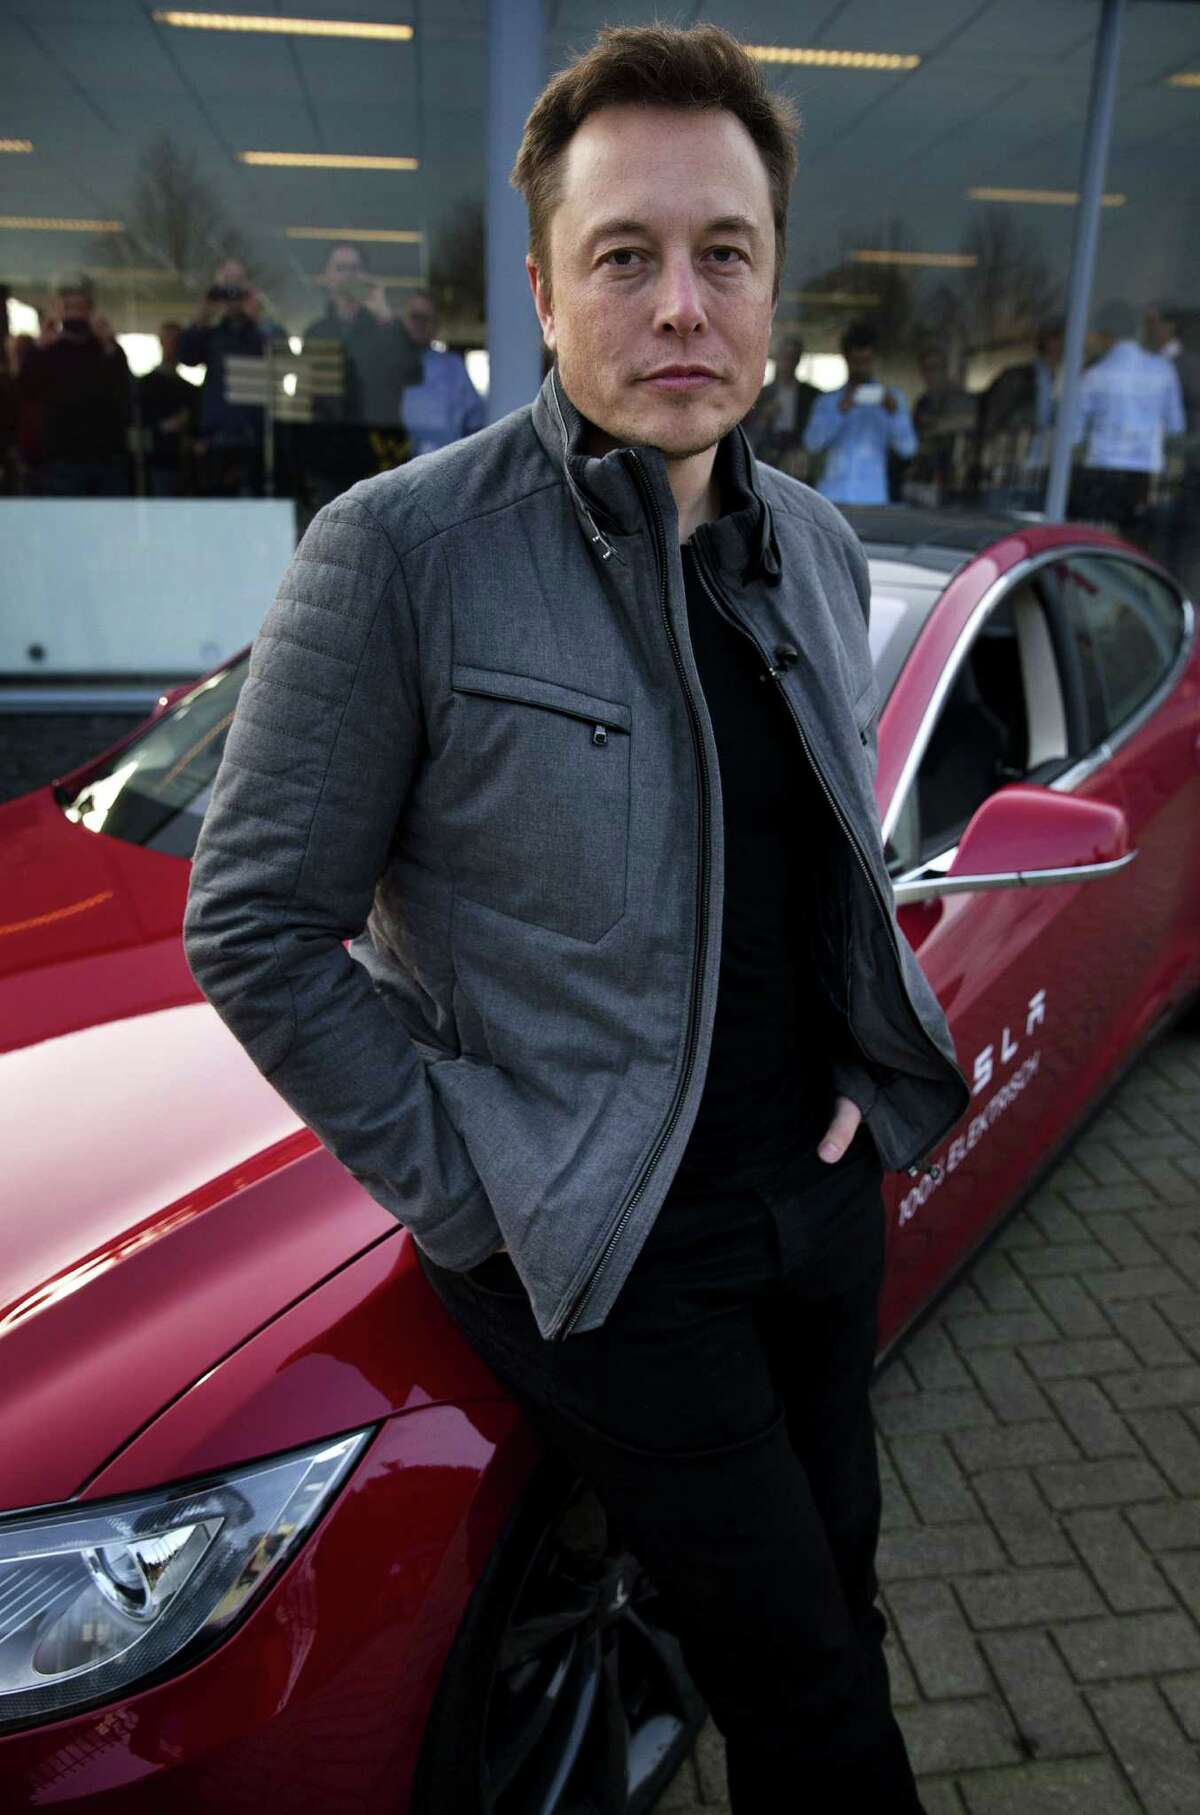 Elon Musk, co-founder and CEO of American electric vehicle manufacturer Tesla Motors, poses with a Tesla during a visit to Amsterdam on January 31, 2014. The European Tesla Service is based in Tilburg and the European headquarters is in Amsterdam. AFP PHOTO / ANP/ JERRY LAMPEN --NETHERLANDS OUT--JERRY LAMPEN/AFP/Getty Images